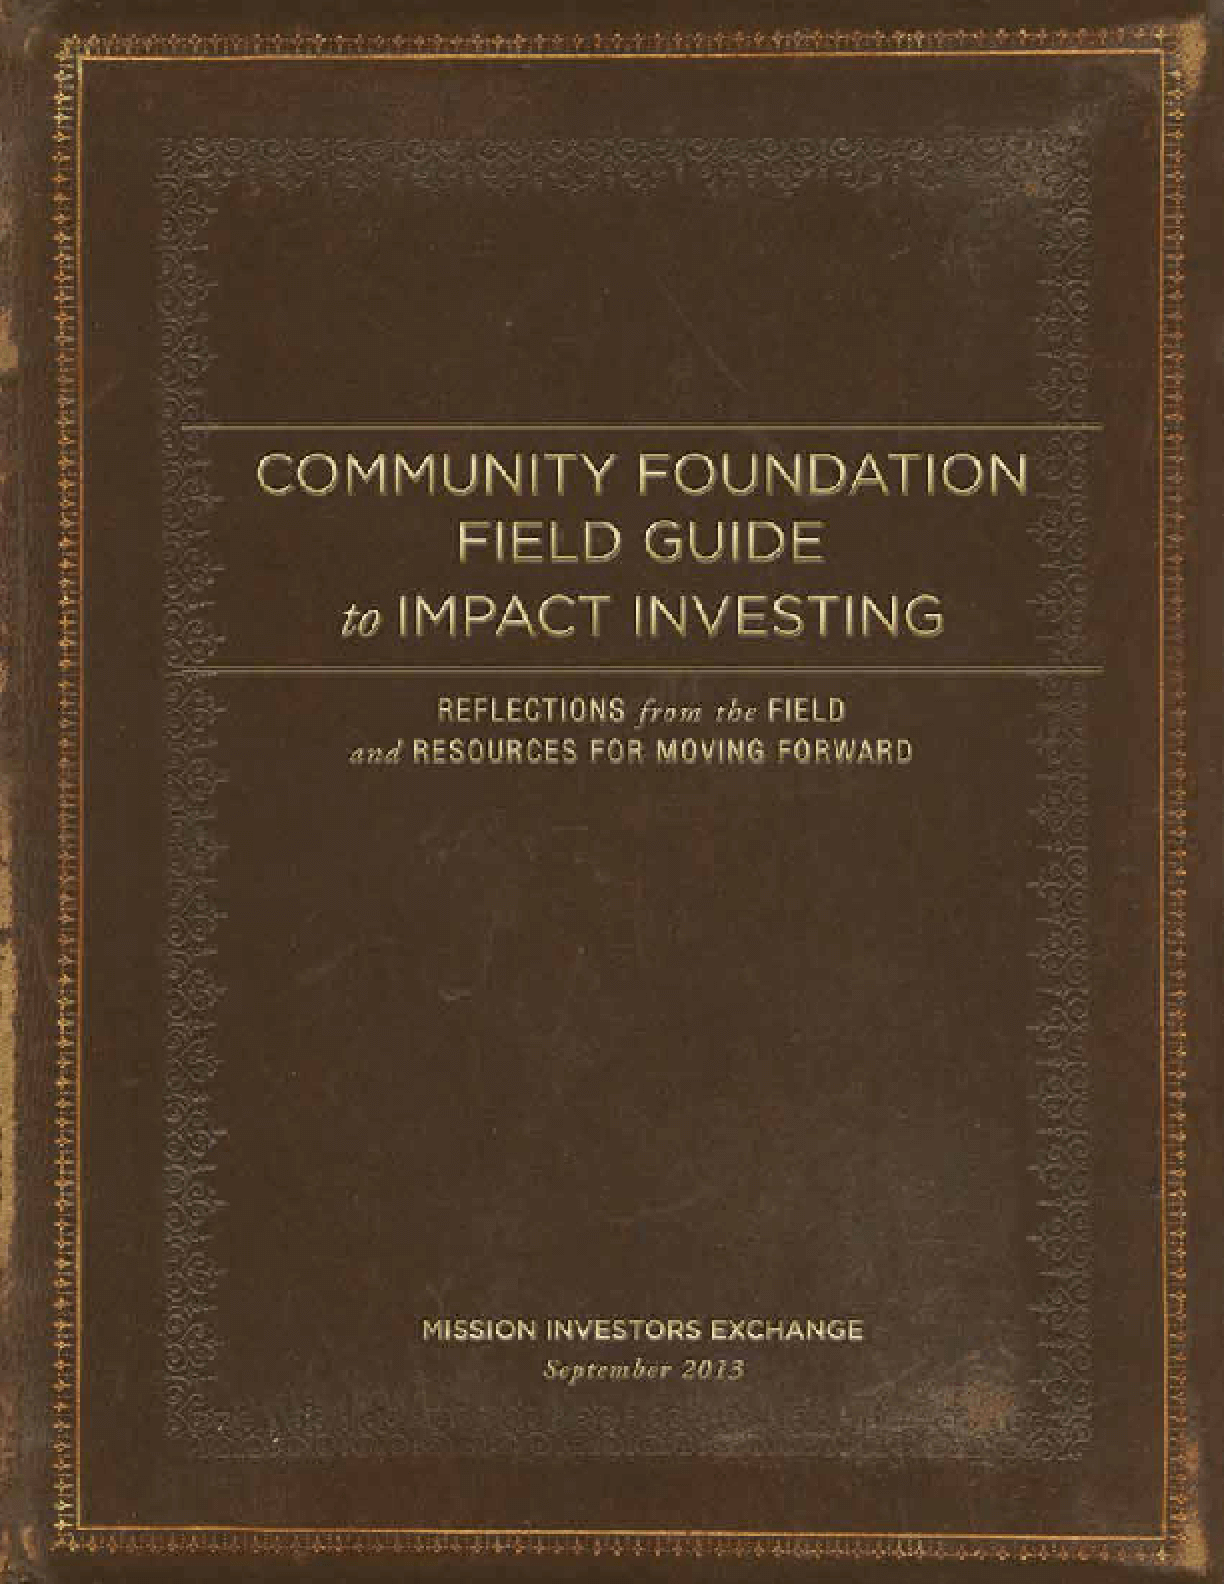 Community Foundation Field Guide to Impact Investing